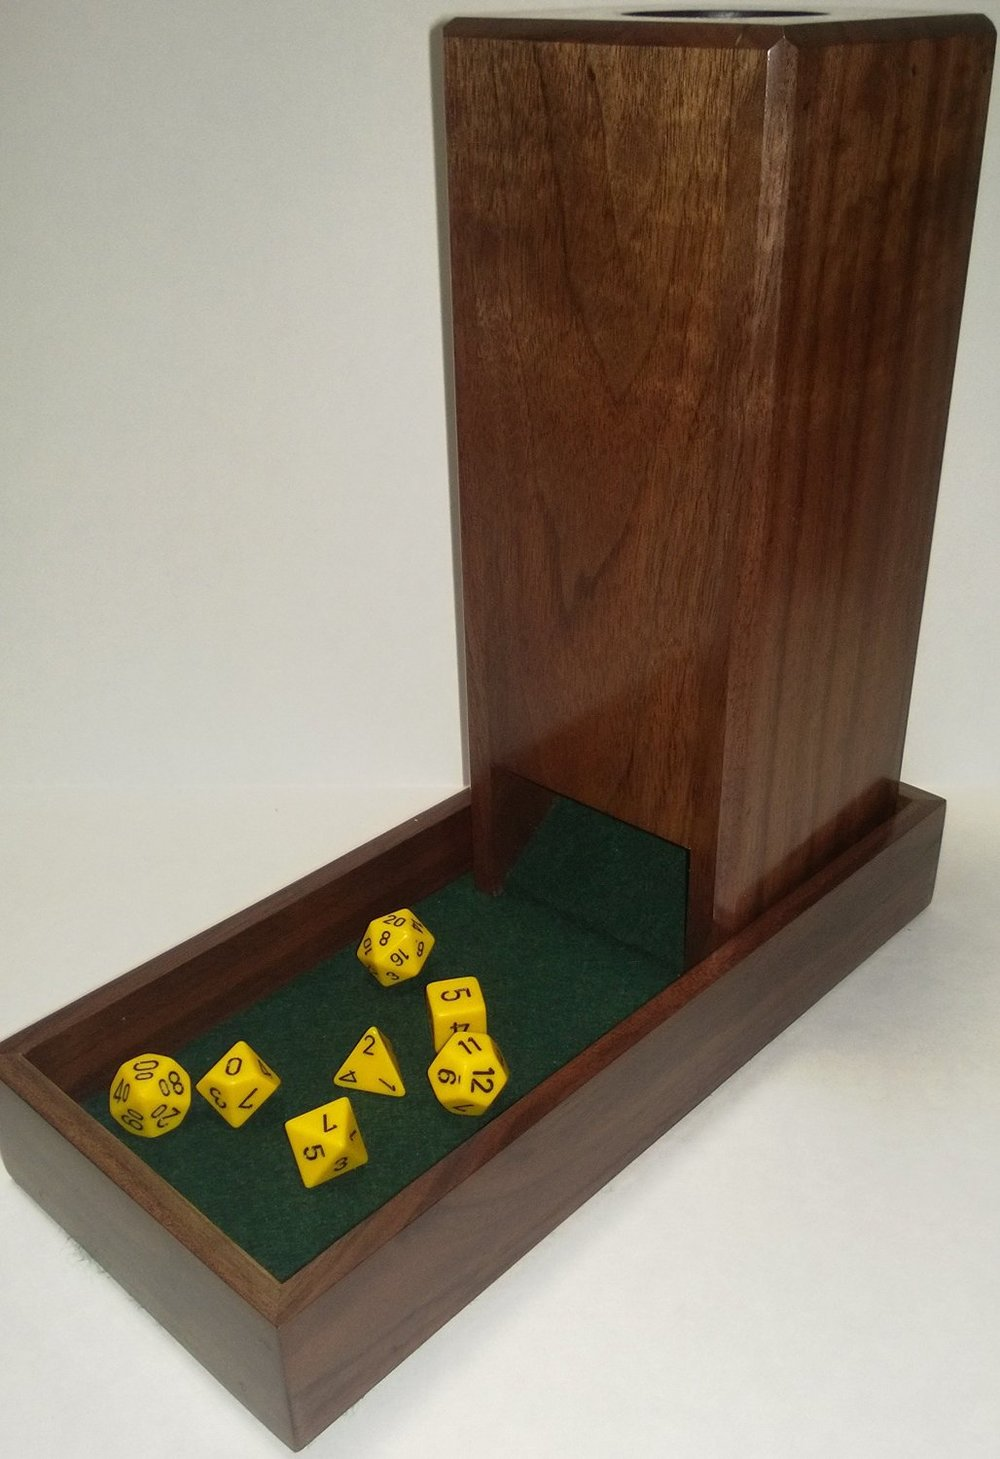 board-game-dice-tower-souza-custom-woodworking-004.jpg